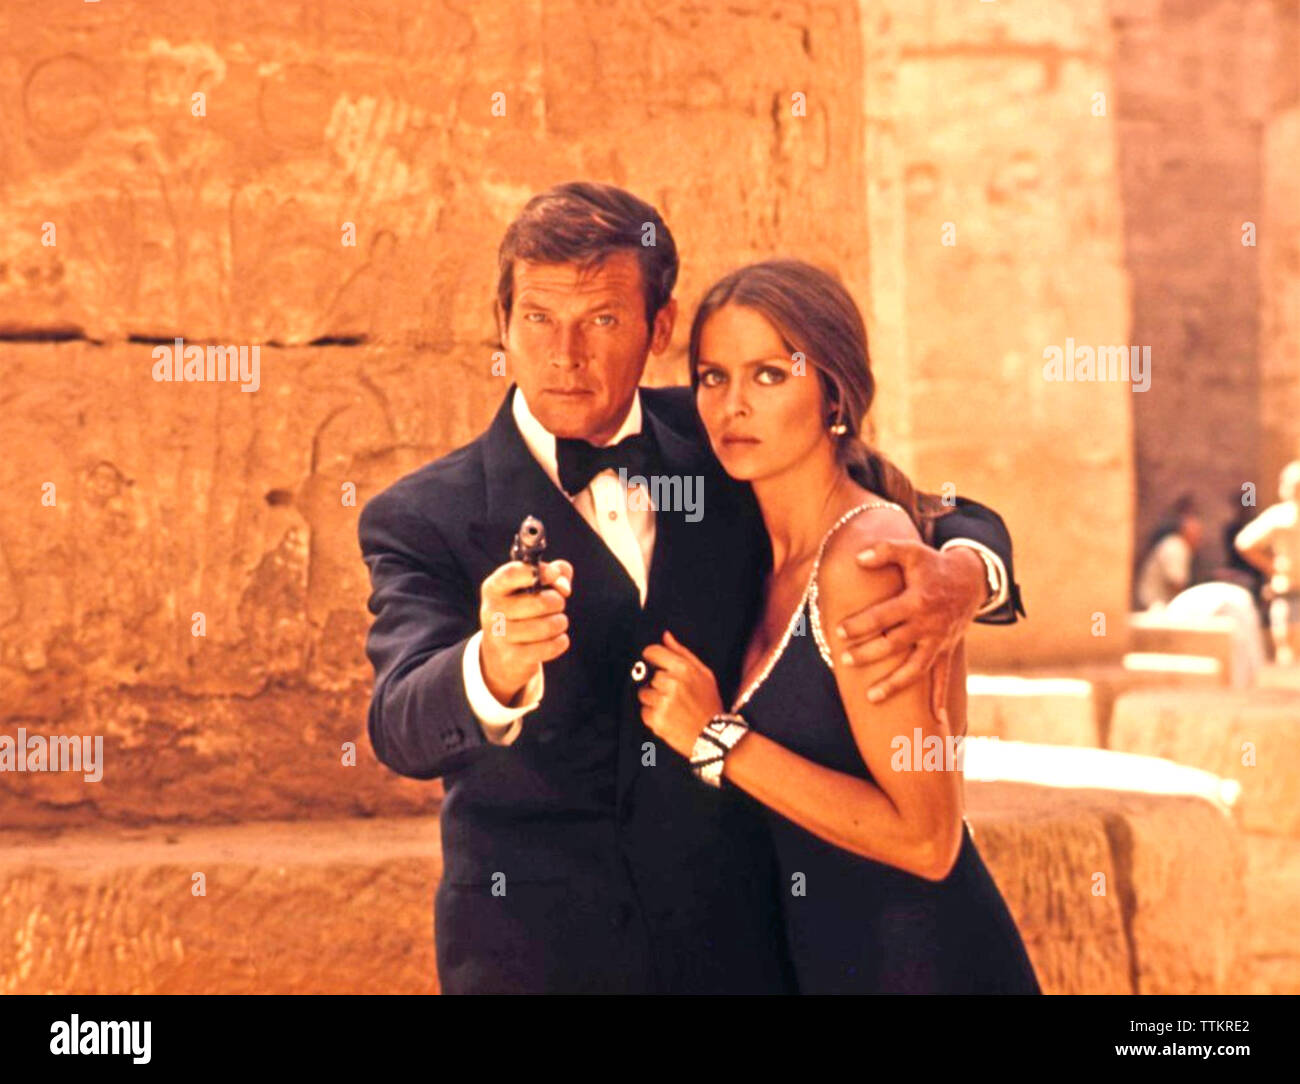 THE SPY WHO LOVED ME 1977 Eon Films production with Roger Moore and Barbara Bach - Stock Image